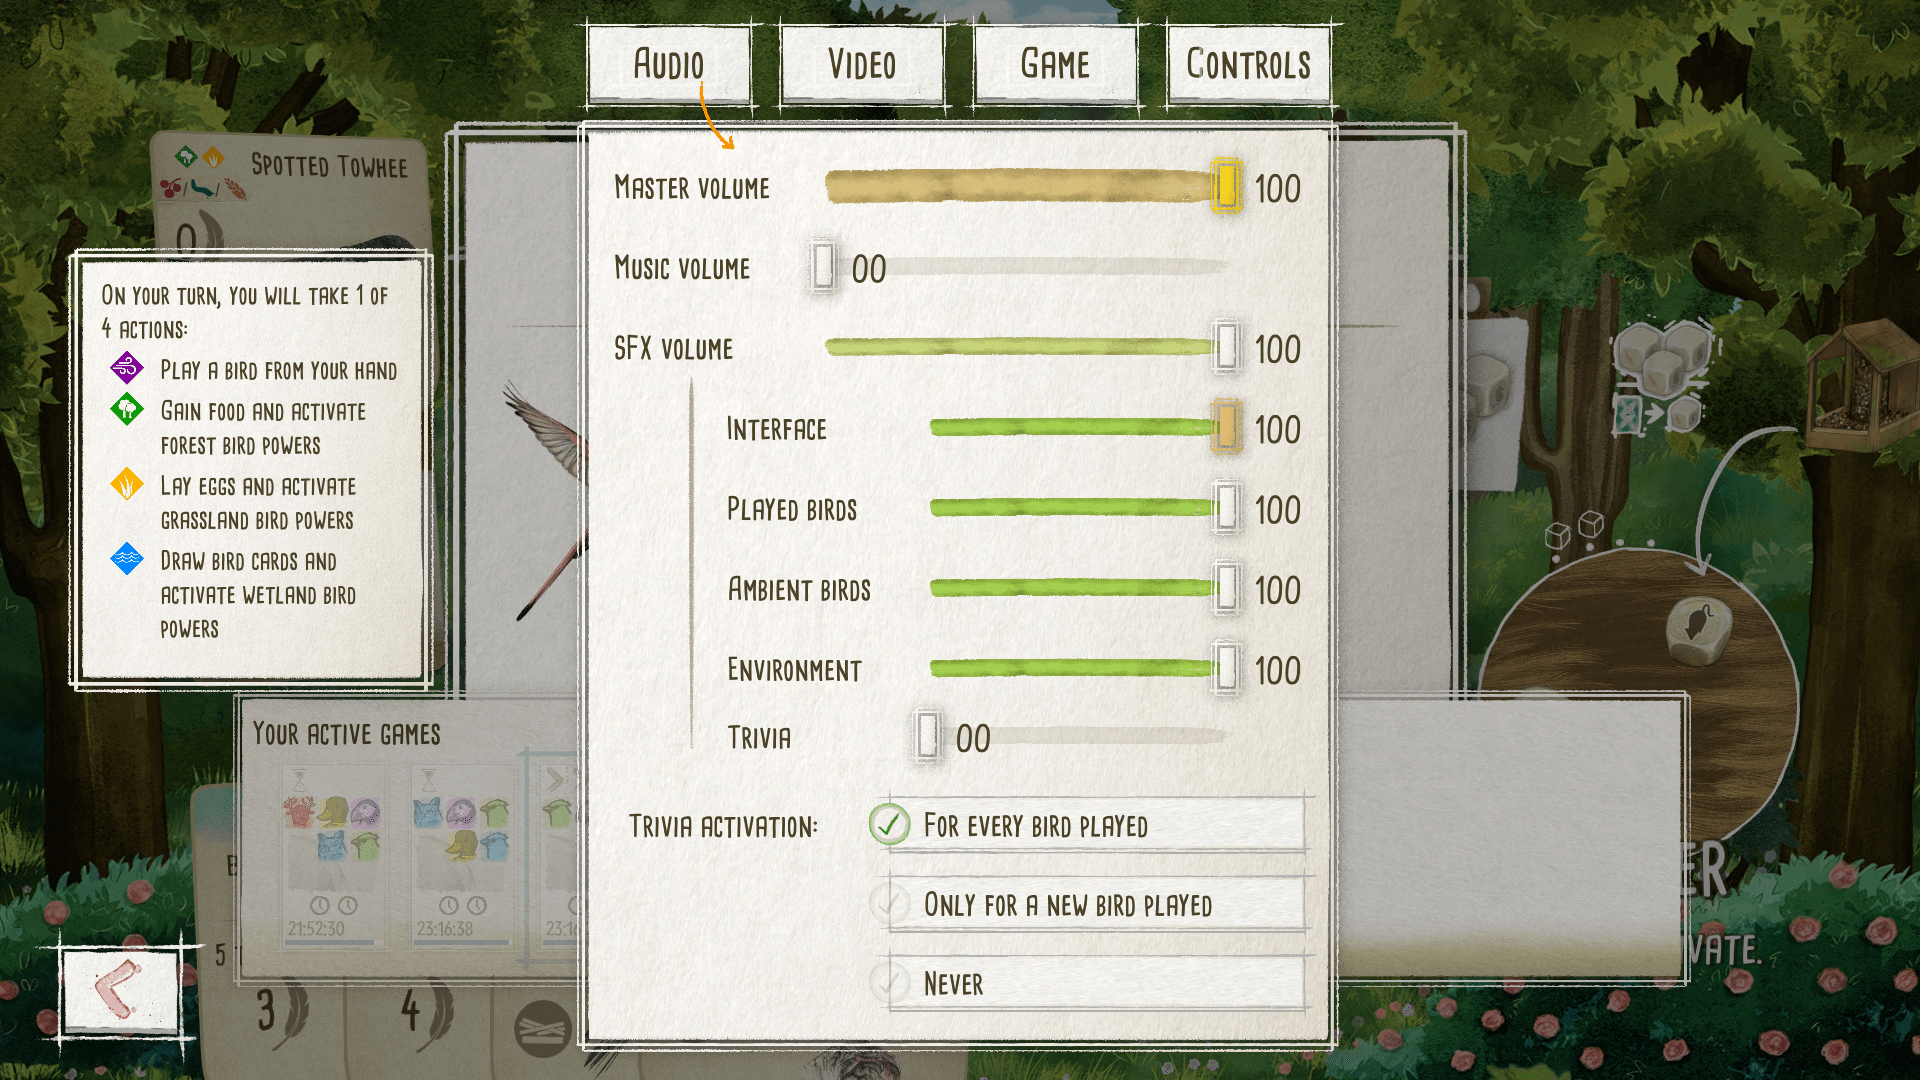 Audio settings menu for Wingspan. Players have control over